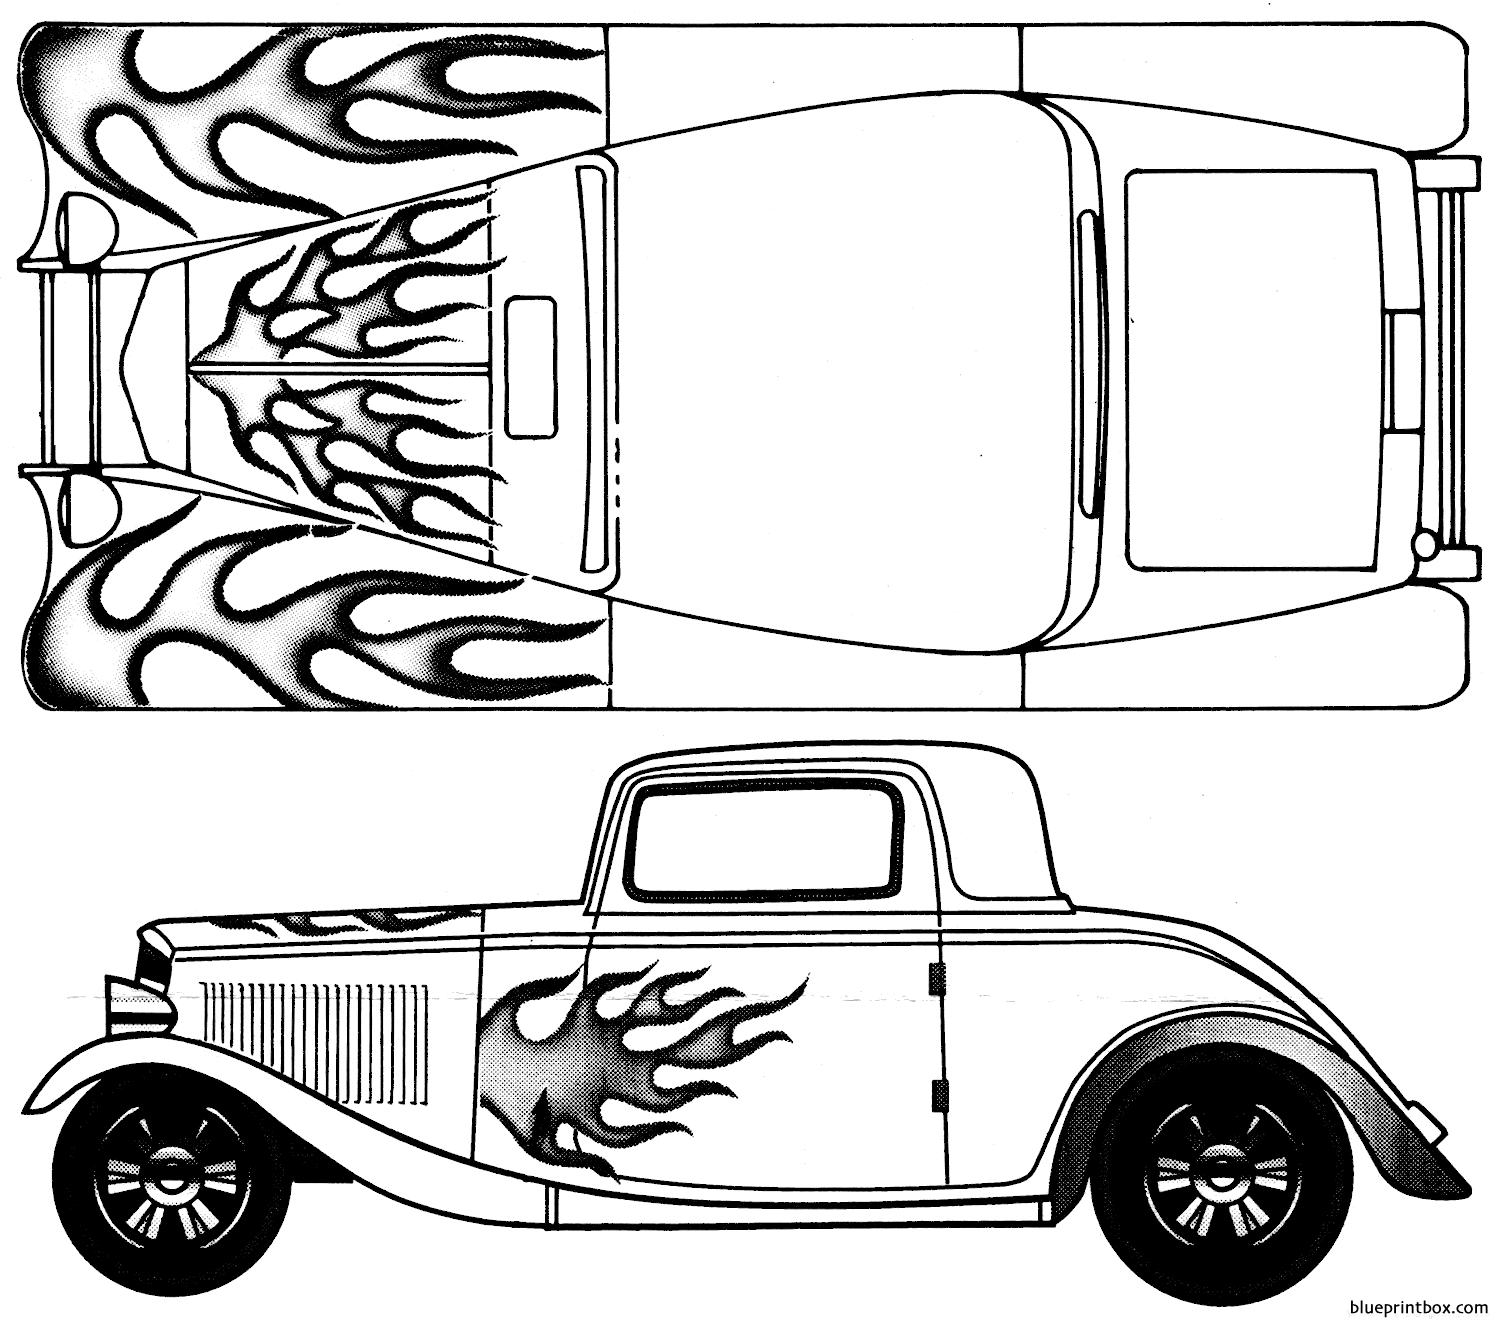 Ford 32 3 Window Coupe - Blueprintbox Com